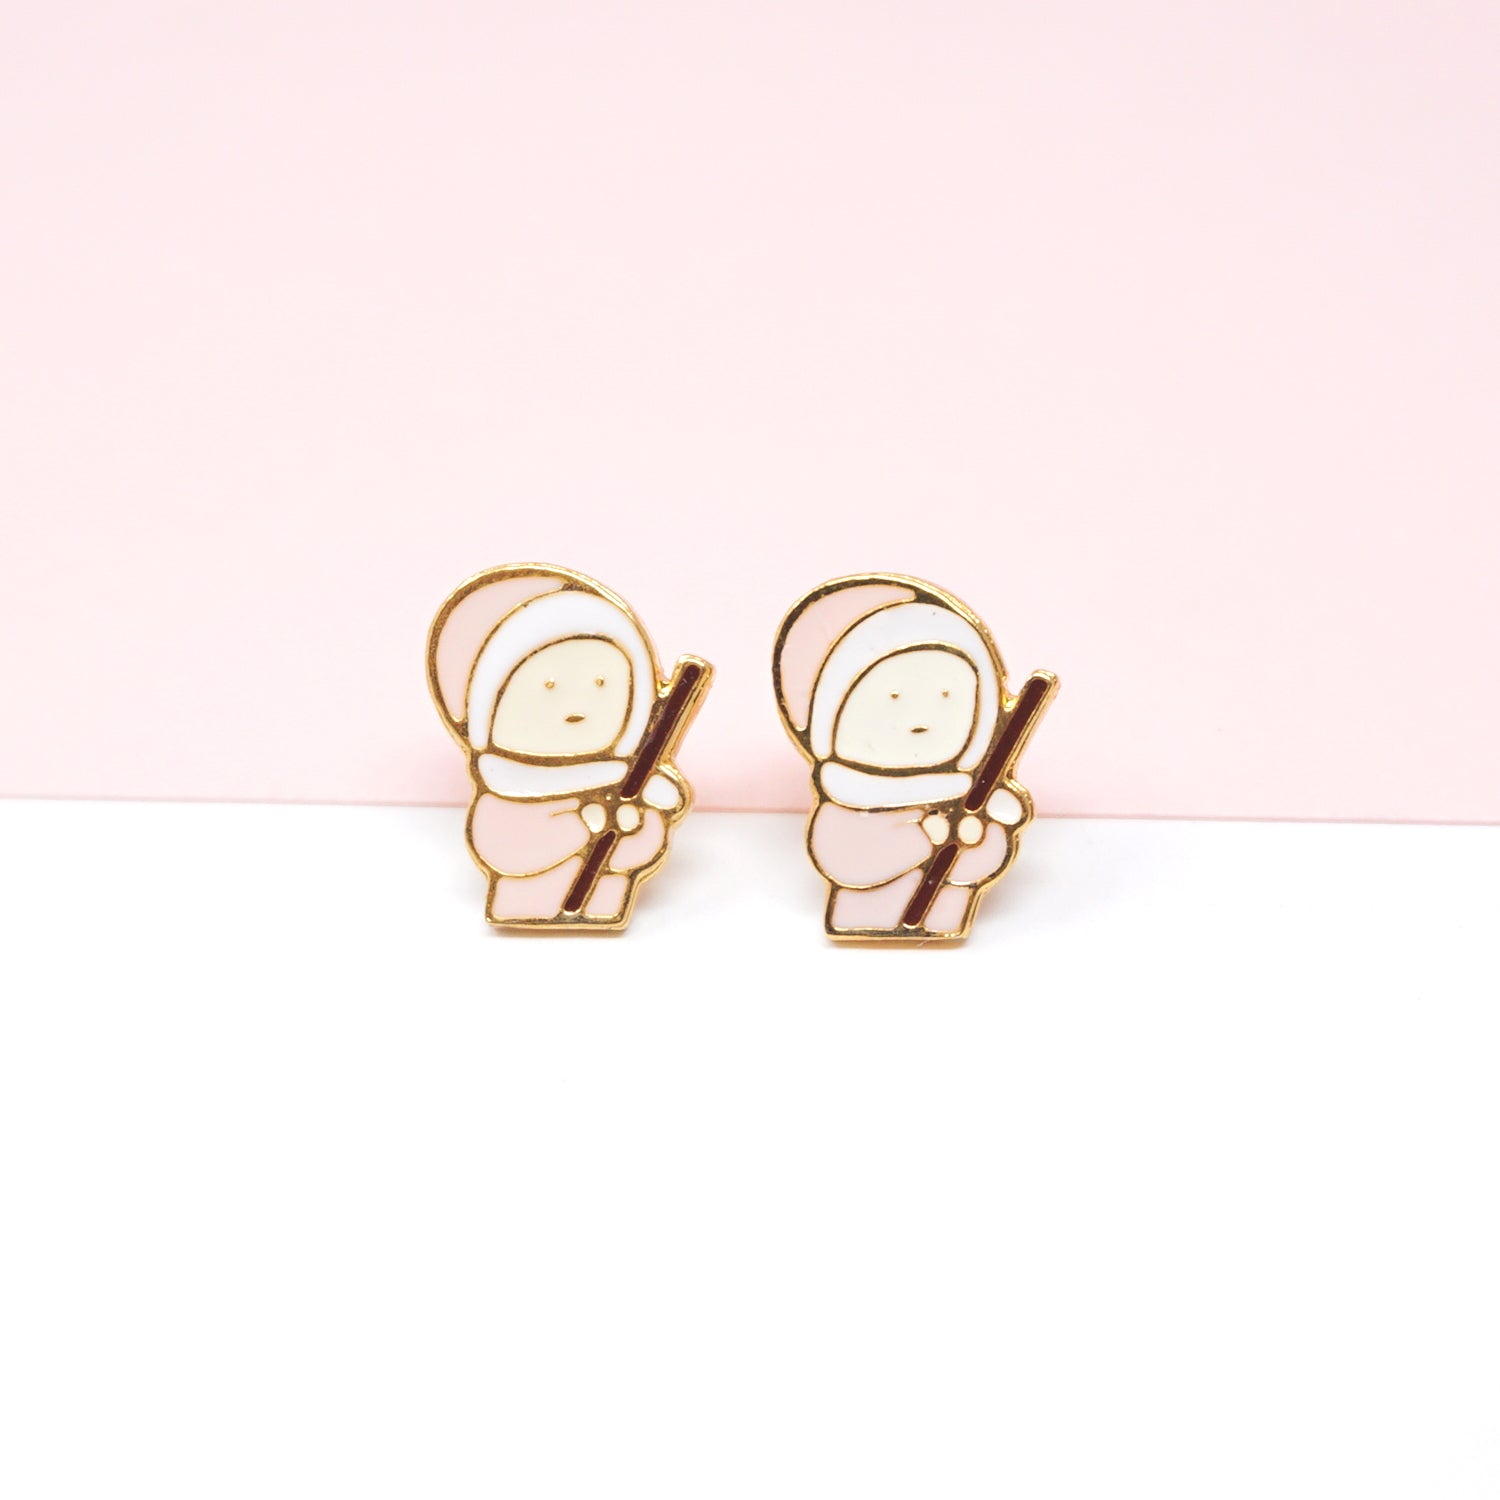 NEW! Li'l Fishman Enamel Stud Earrings